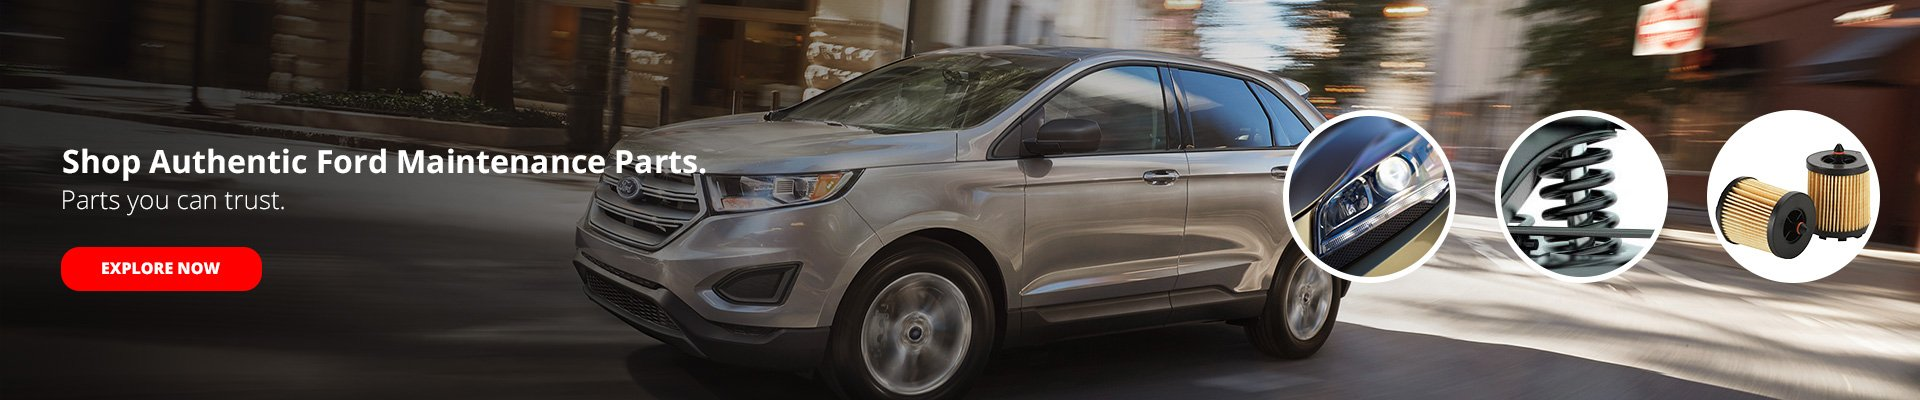 Ford Maintenance Parts